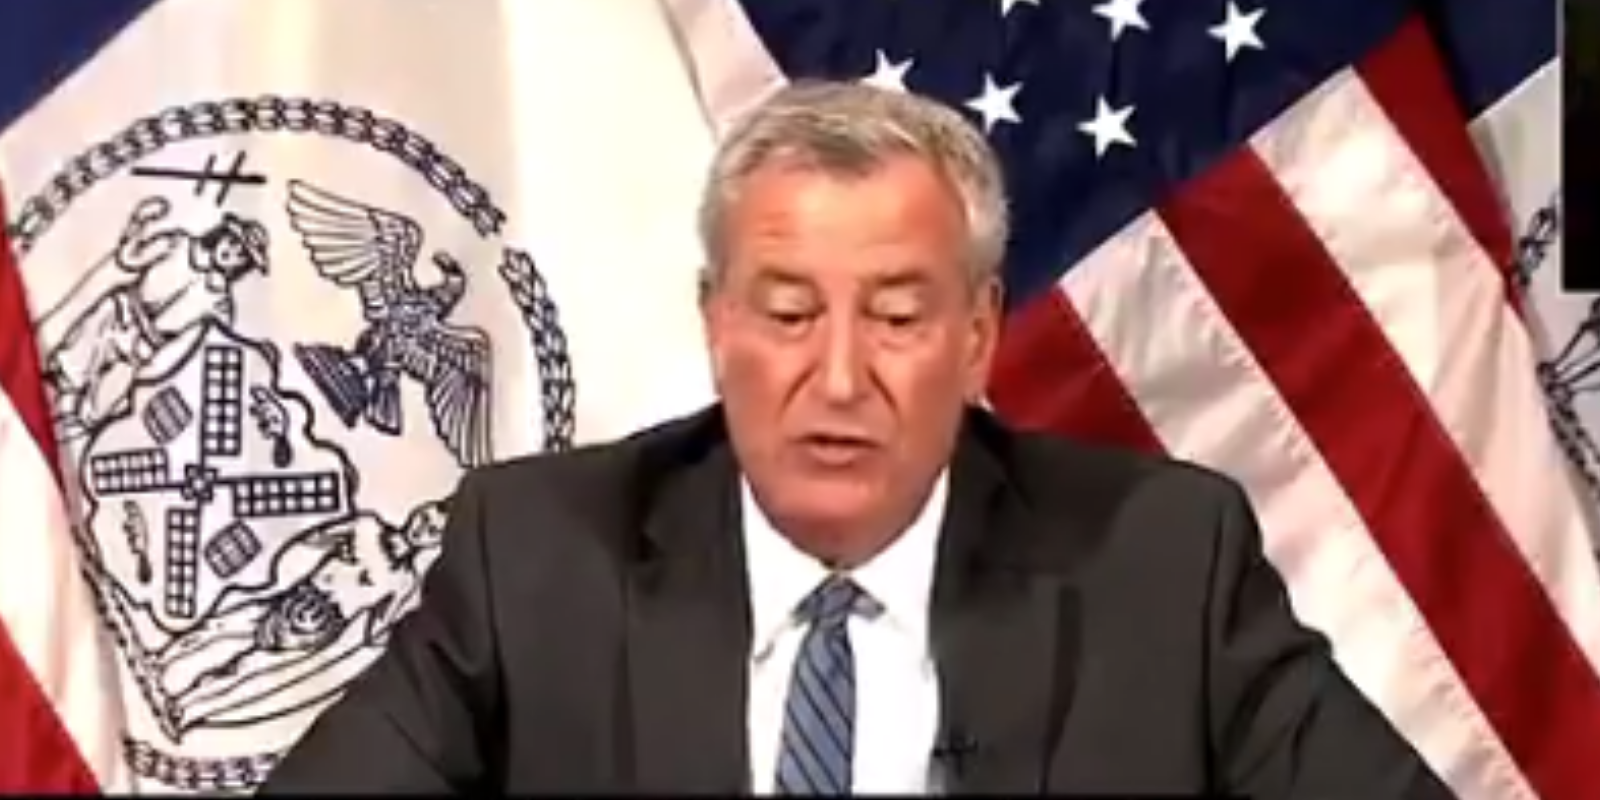 WATCH: De Blasio says Cuomo too distracted by sex scandals to govern New York